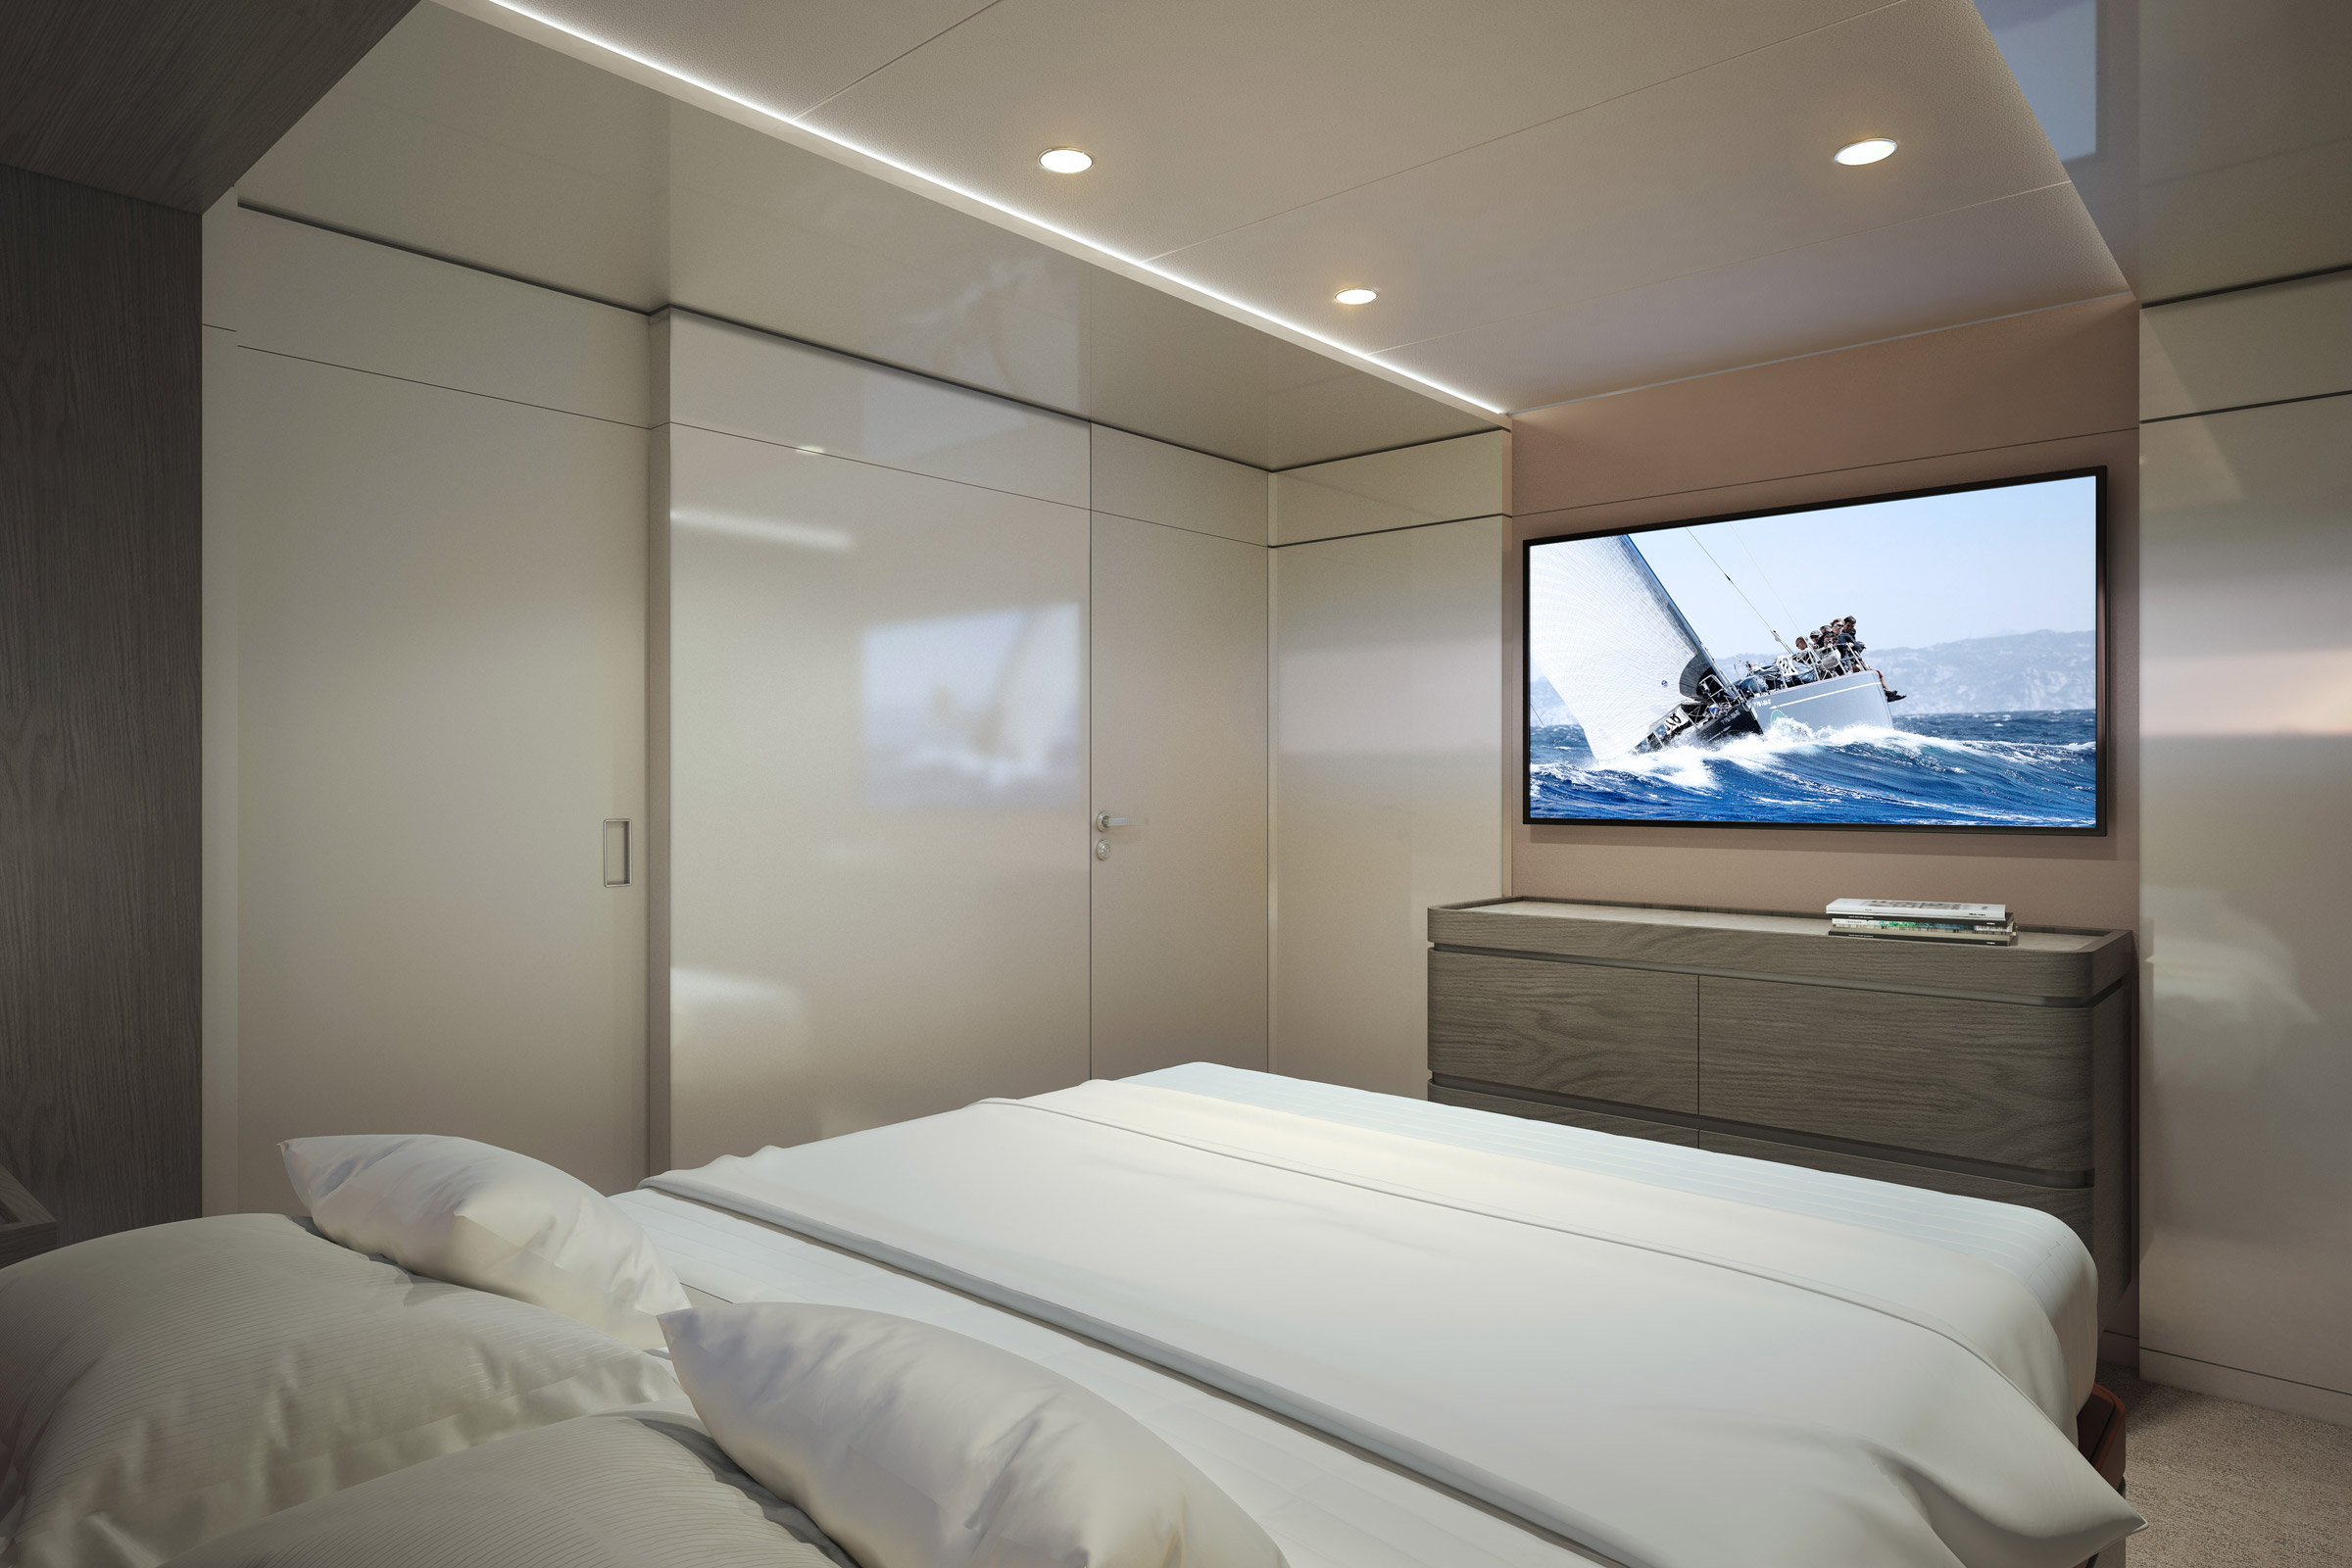 HH_Yacht_Guest_Bedroom_Cam2_V1_002